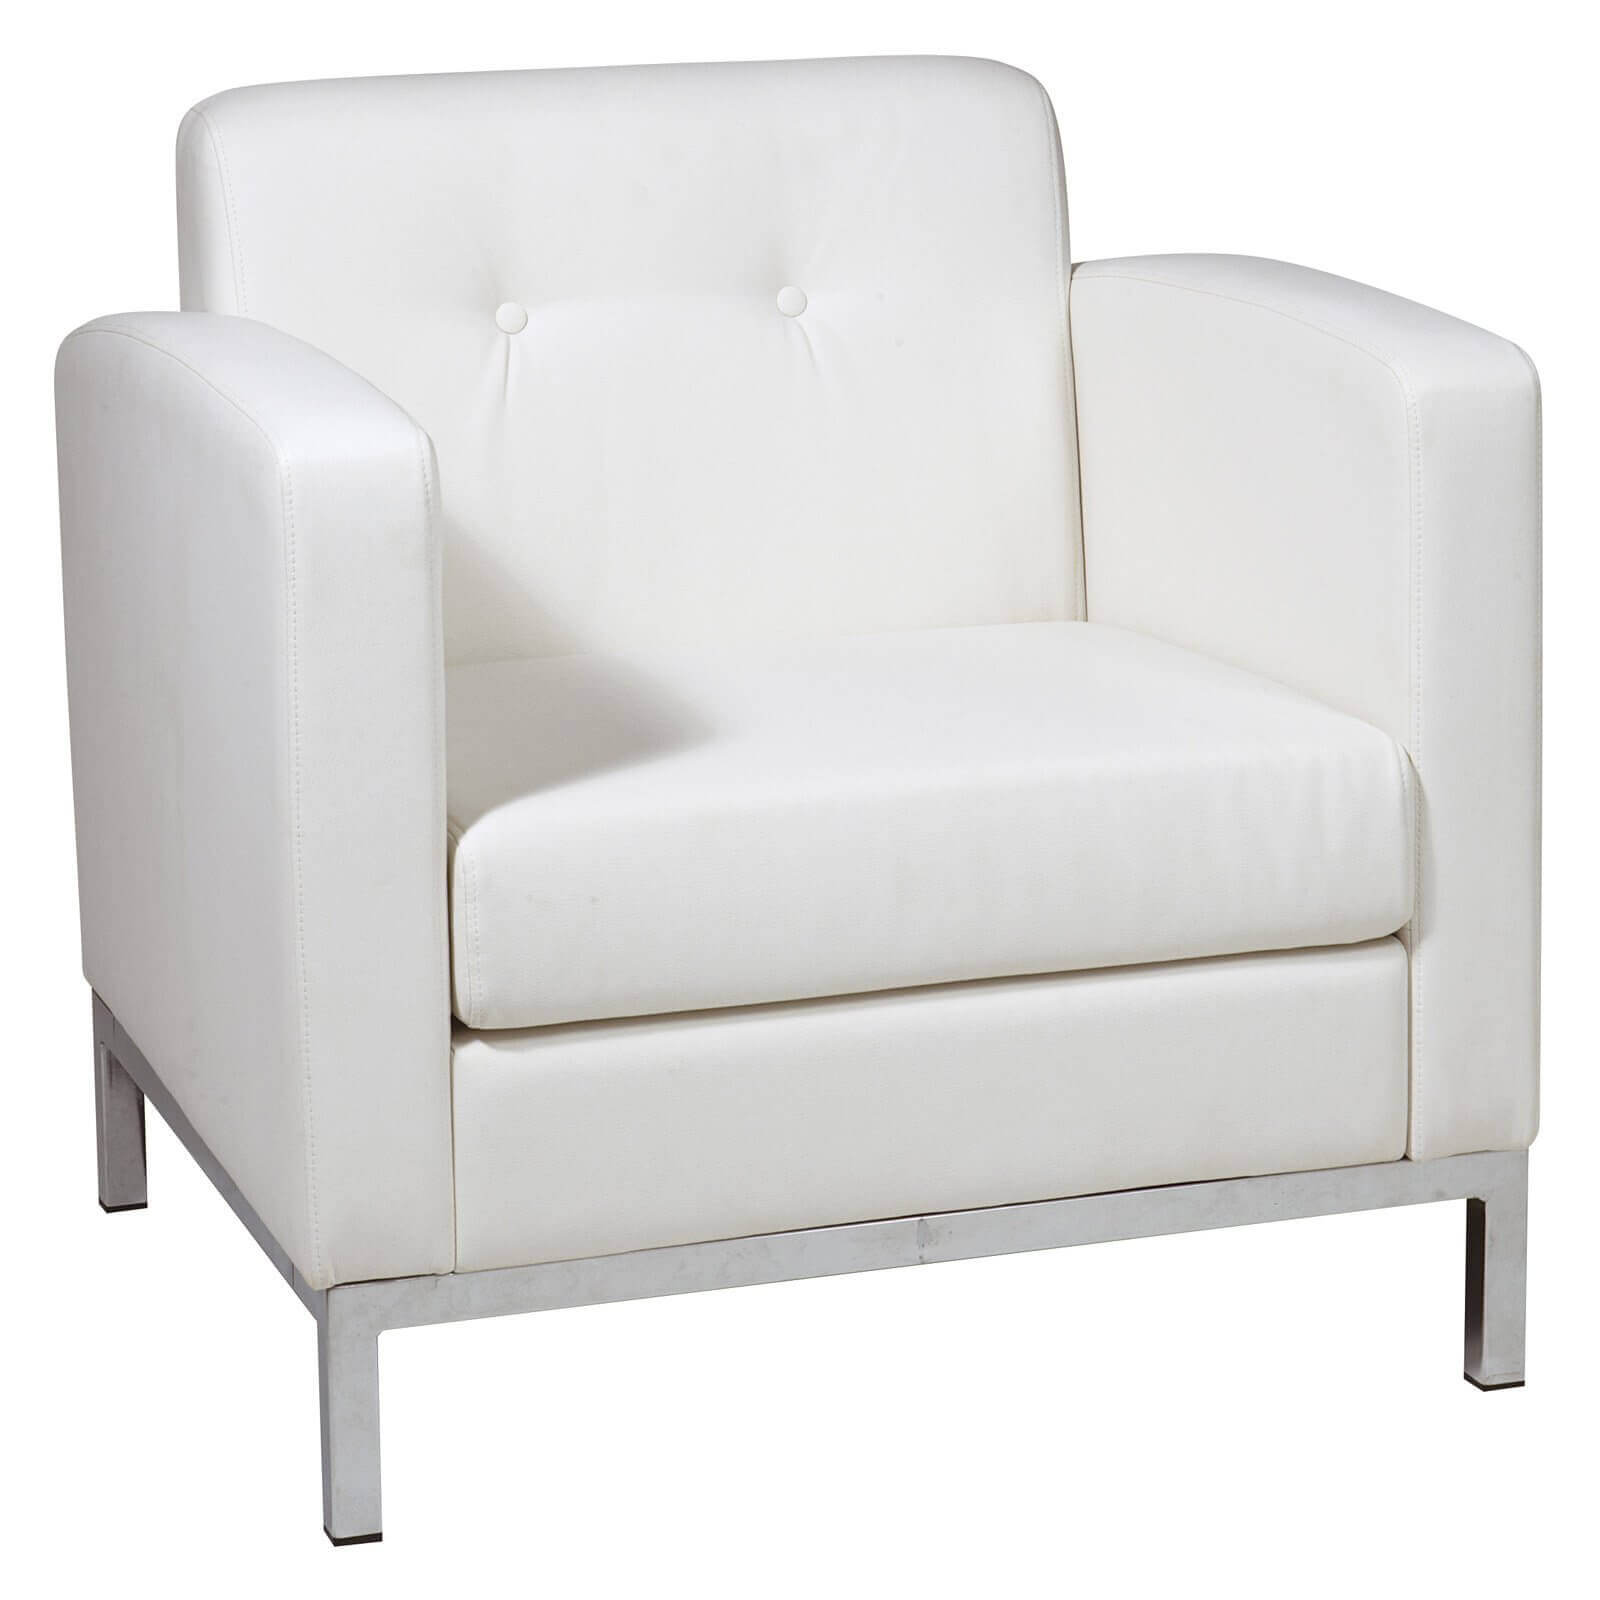 Streamlined, boxy white faux leather design of this accent chair from Office Star provides contemporary style with classic feel. Box spring seating and chrome base keep it grounded in any space.